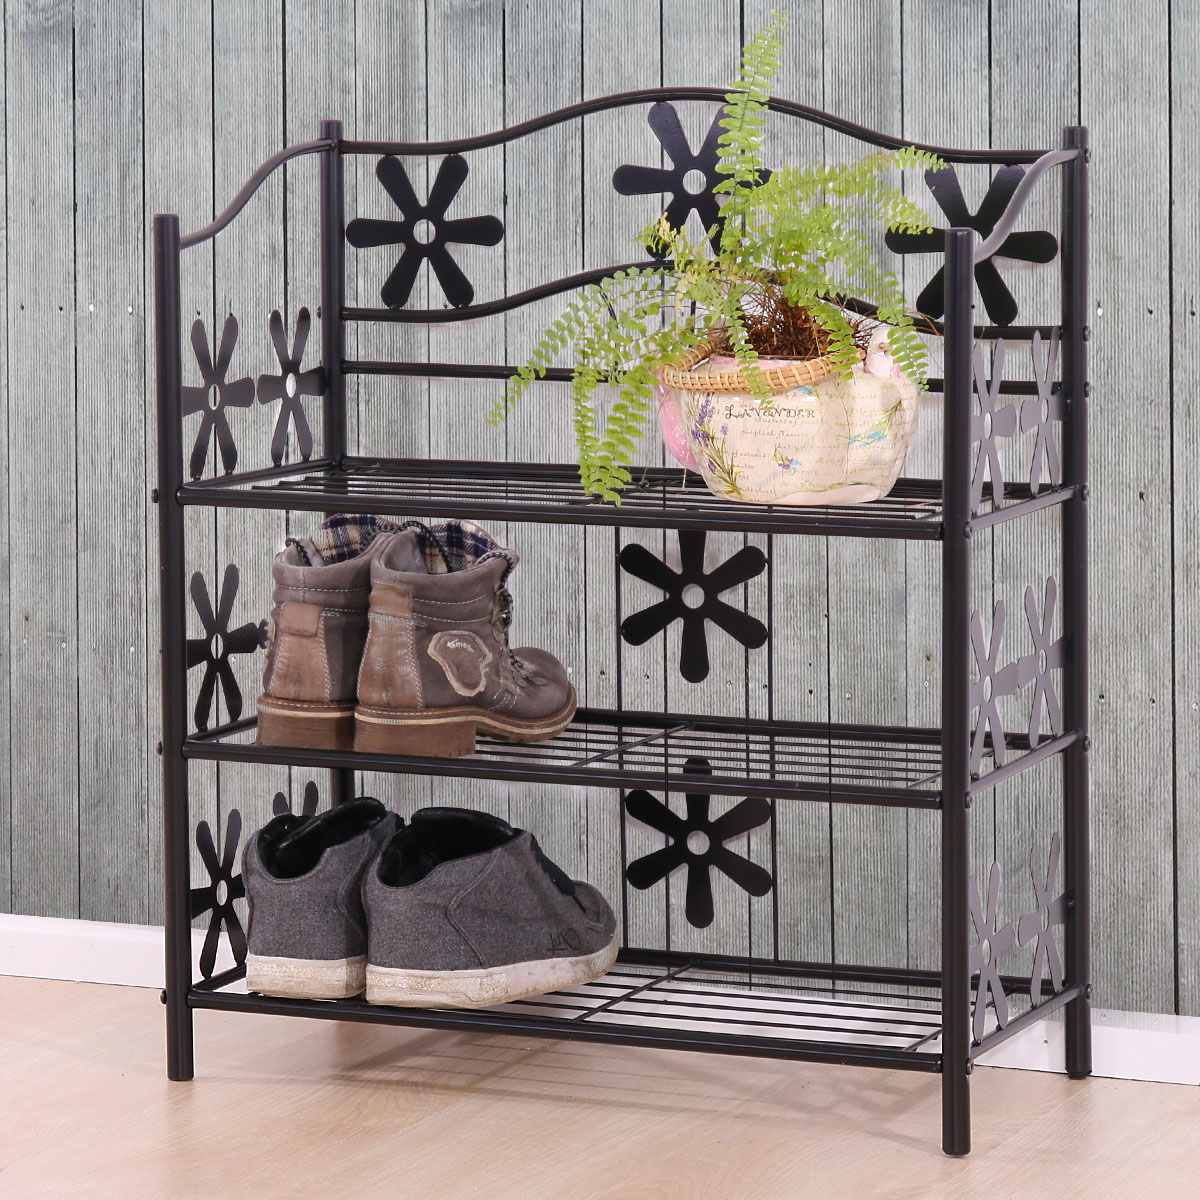 regal metall b cherregal schuhregal standregal genf h he 50 112 cm ebay. Black Bedroom Furniture Sets. Home Design Ideas